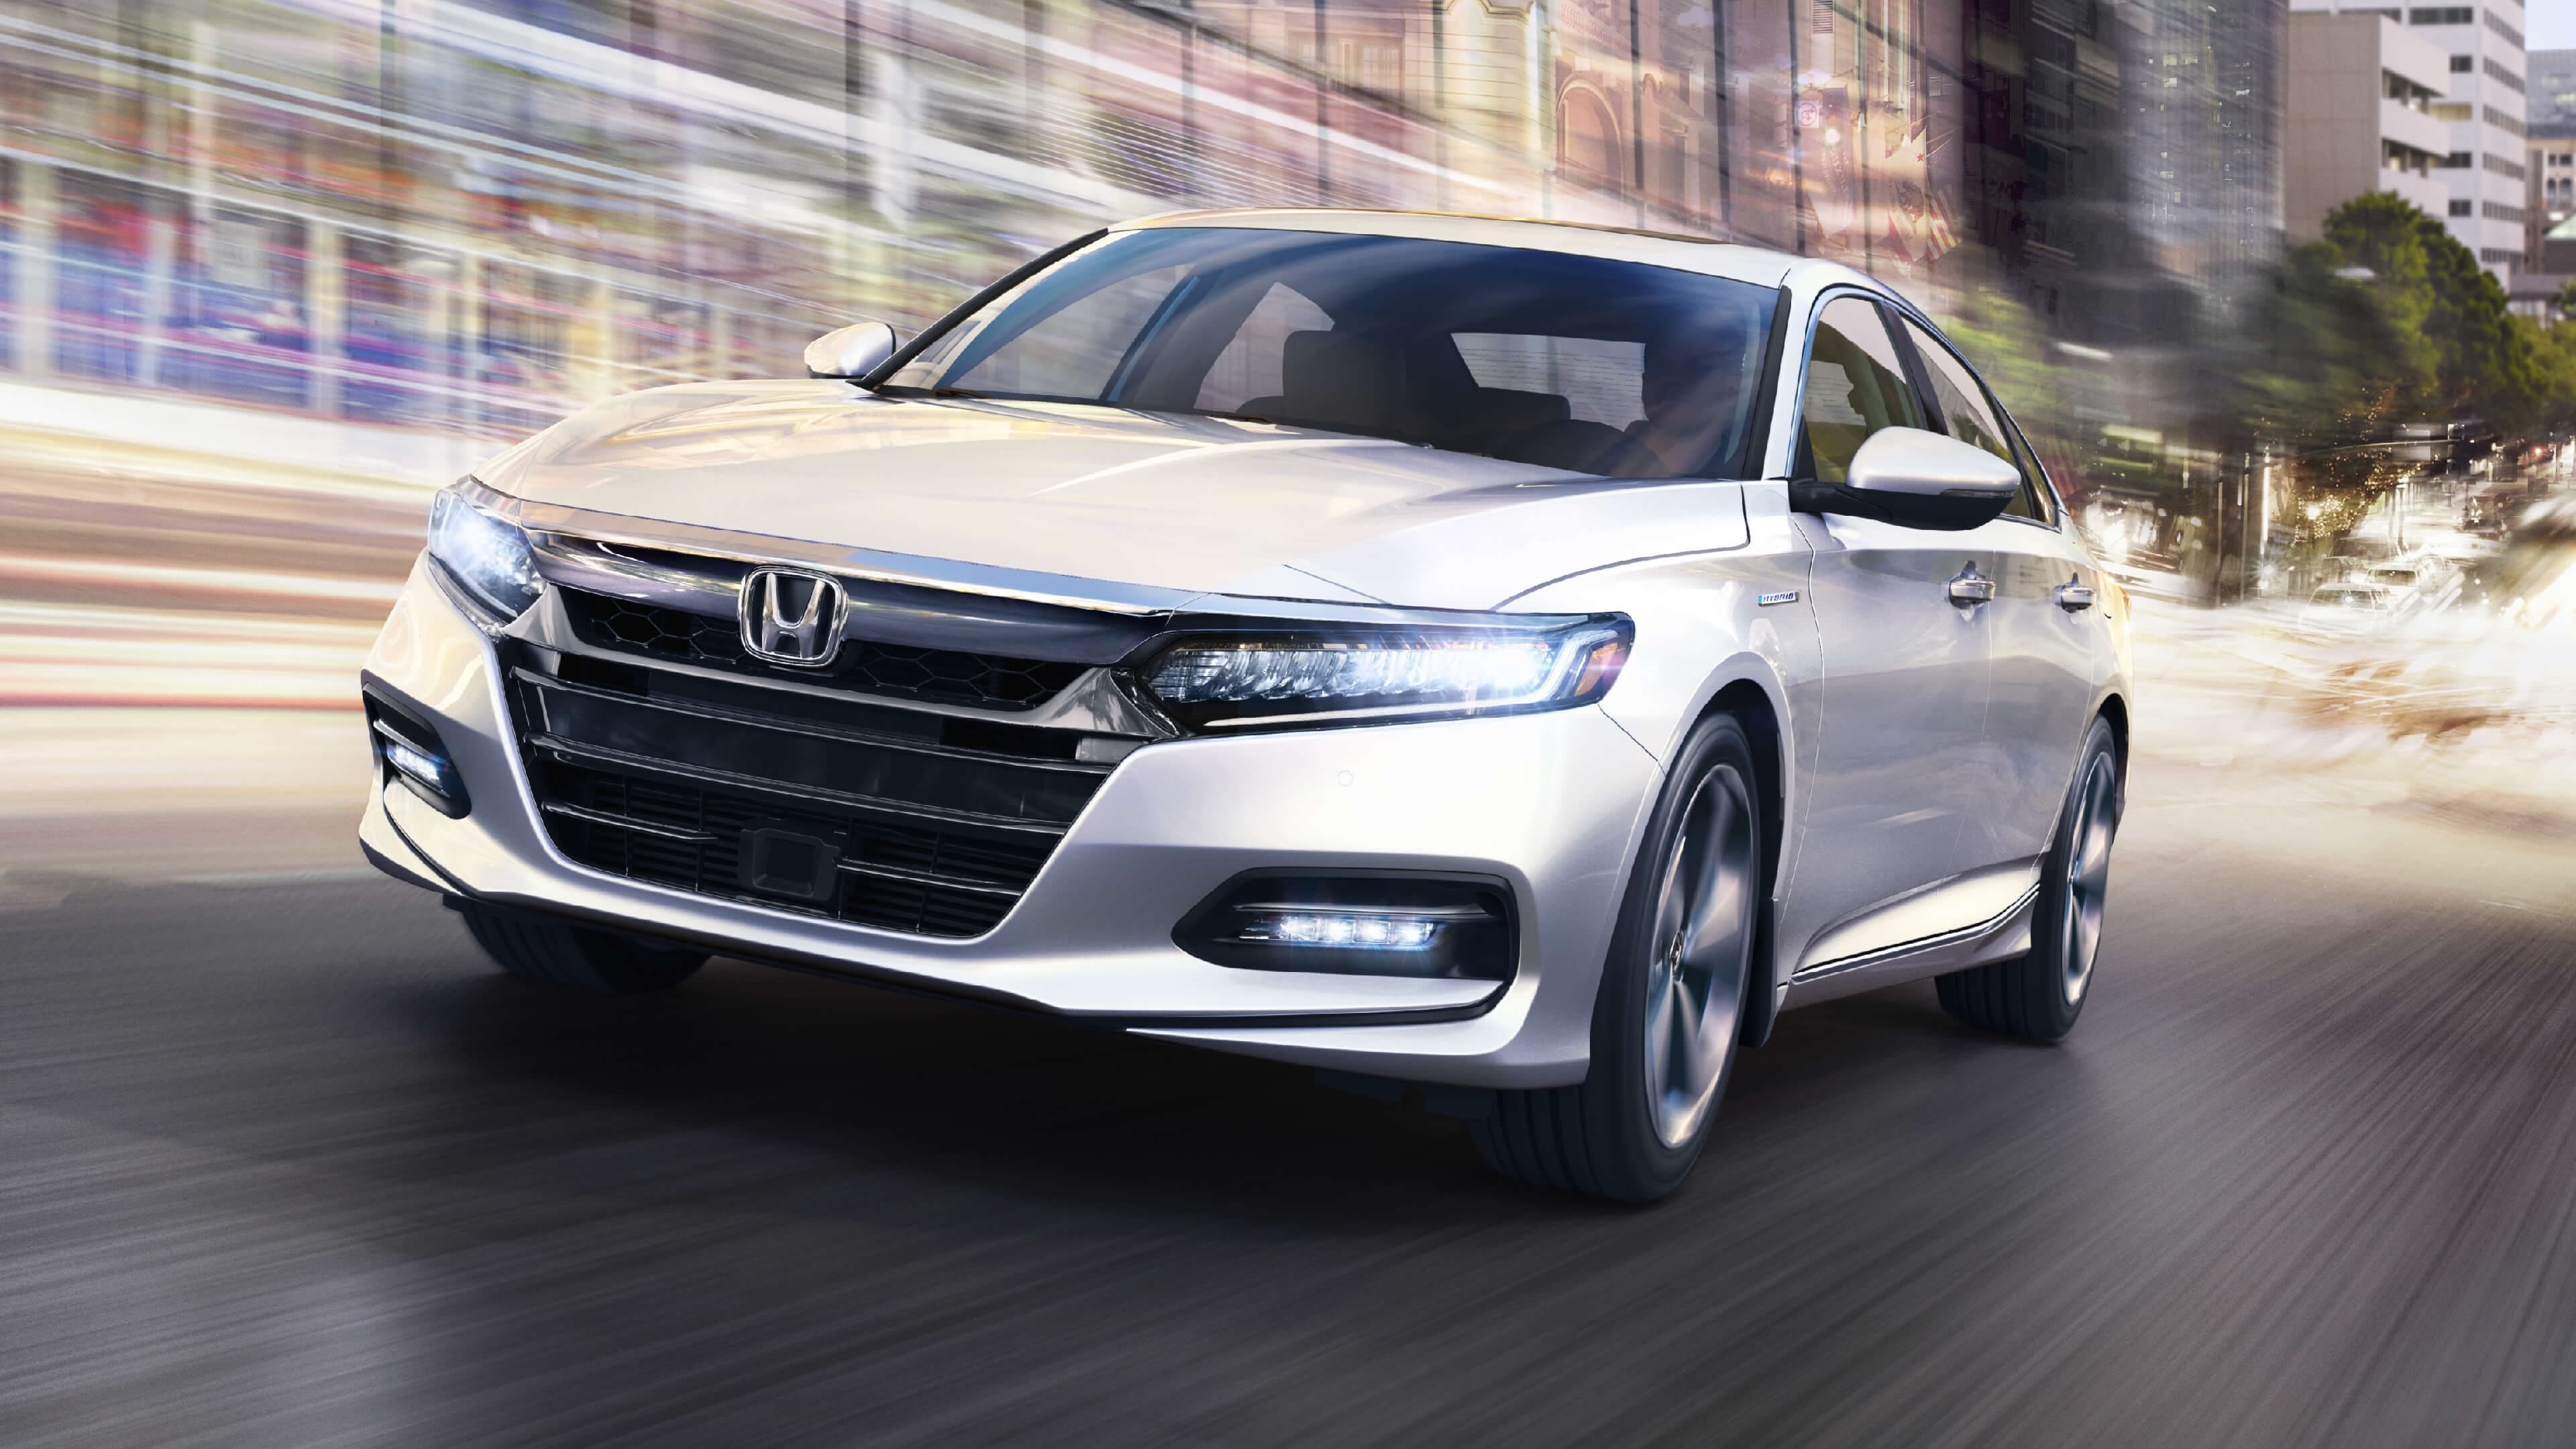 Accord Hybrid driving with futuristic effects around it